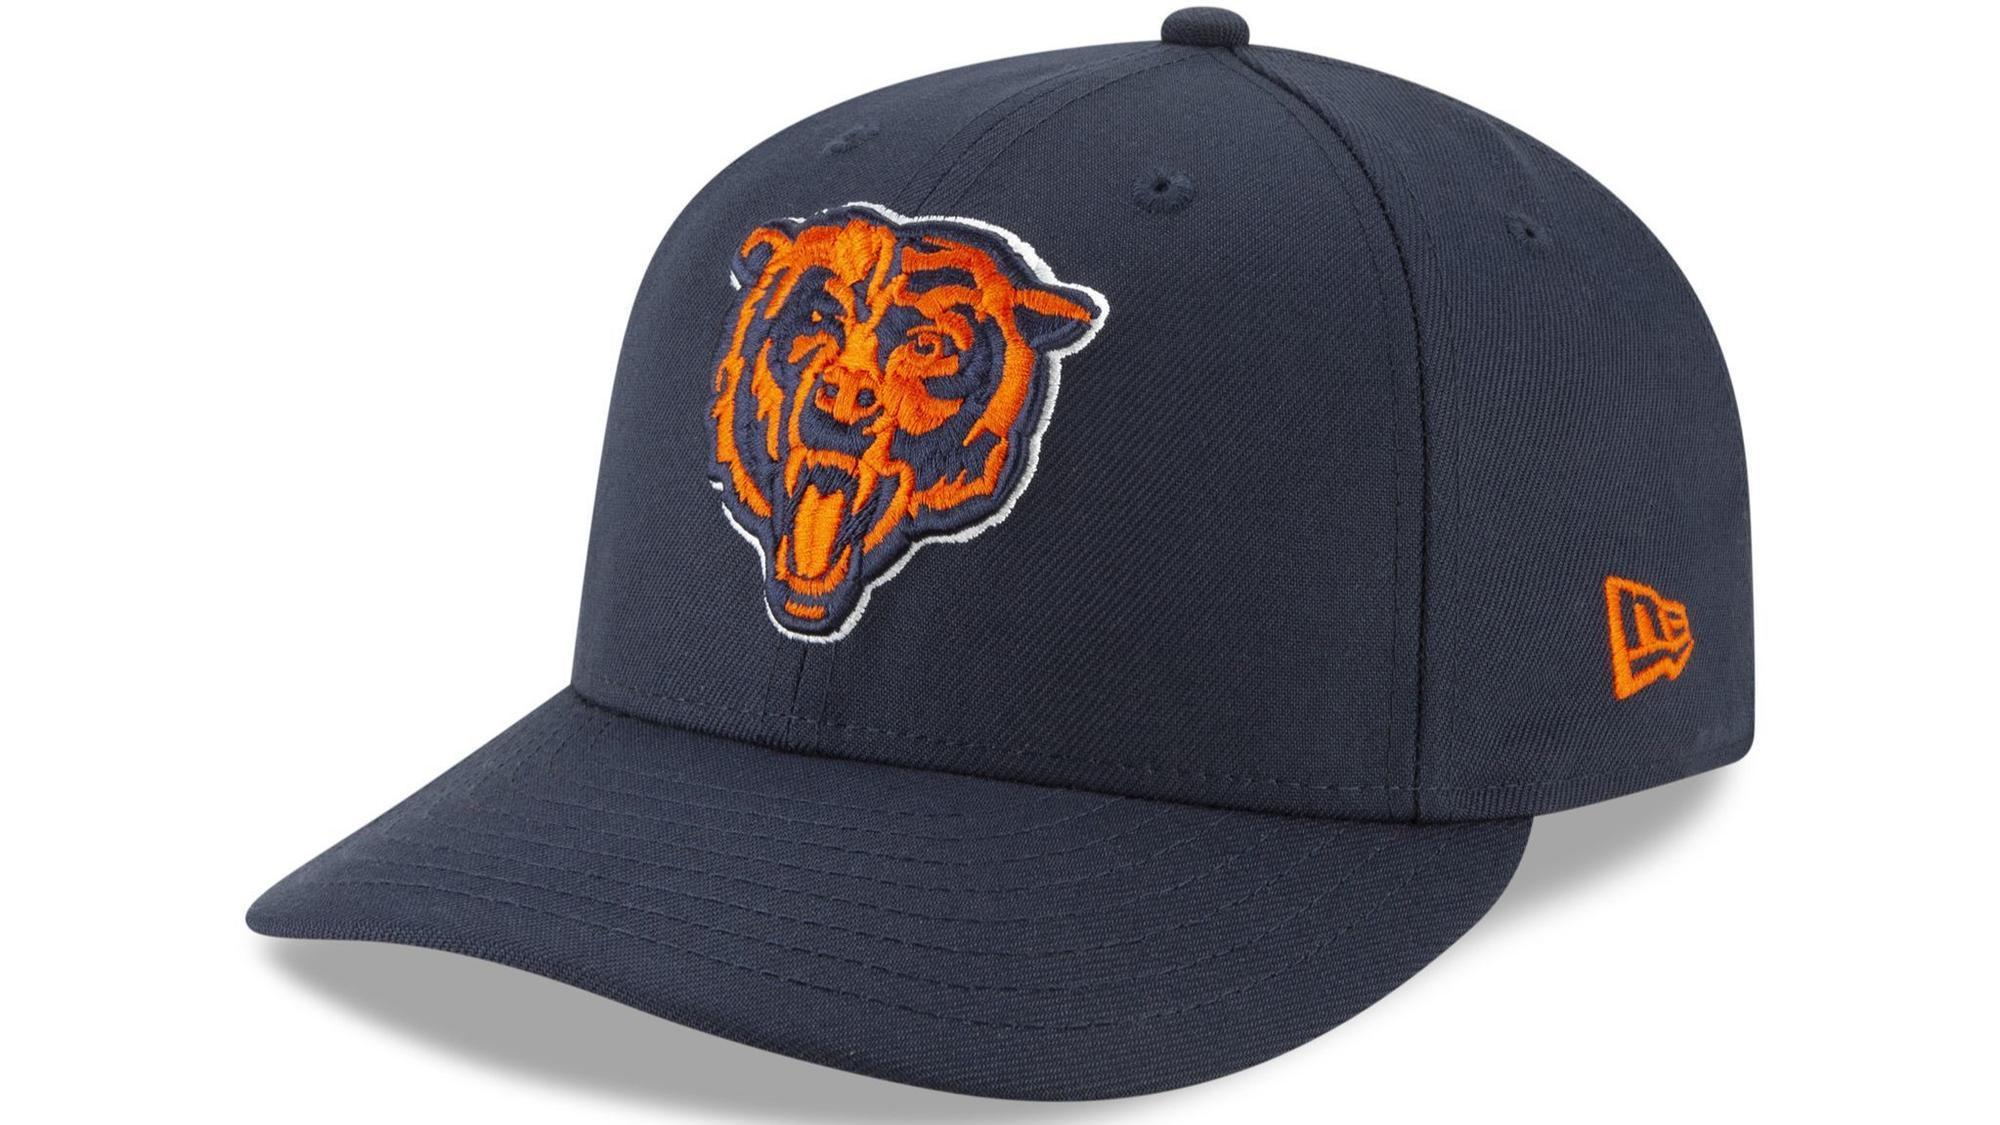 aceeedc6fb1 Ranking this year s official NFL draft ballcaps